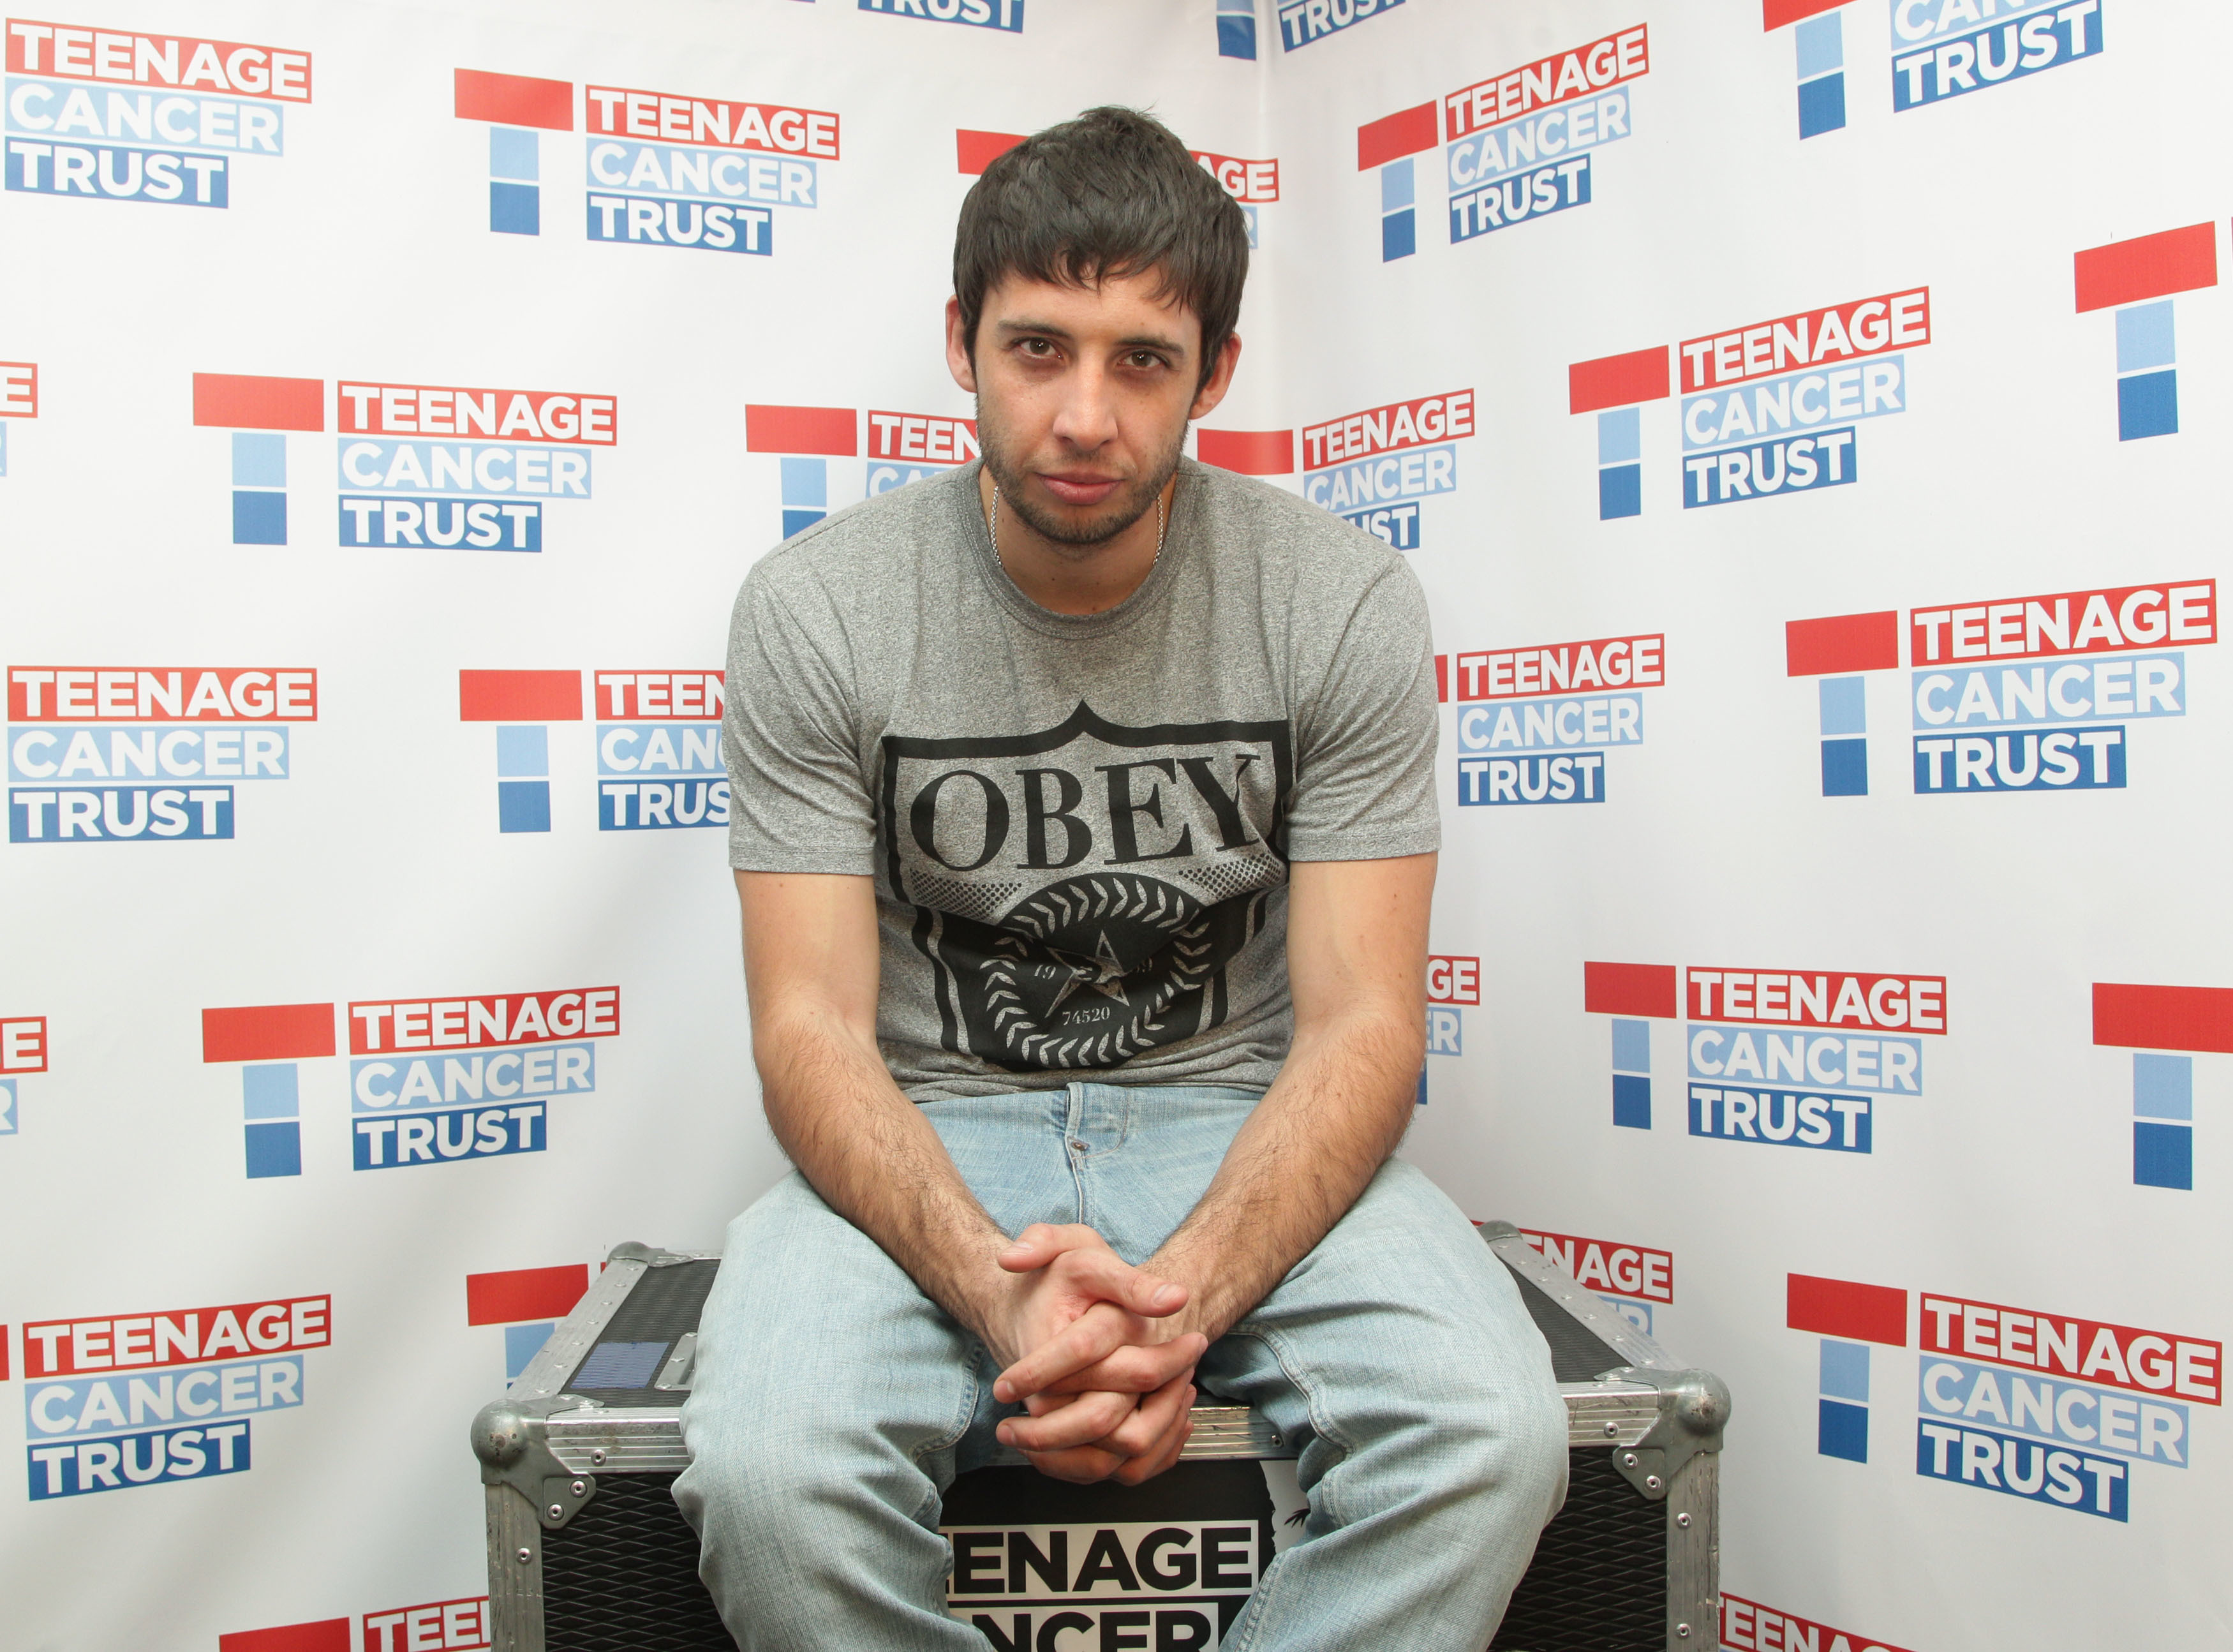 Elliot Gleave, better known as rapper Example, backstage during the Teenage Cancer Trust series of concerts, at the Royal Albert Hall in west London